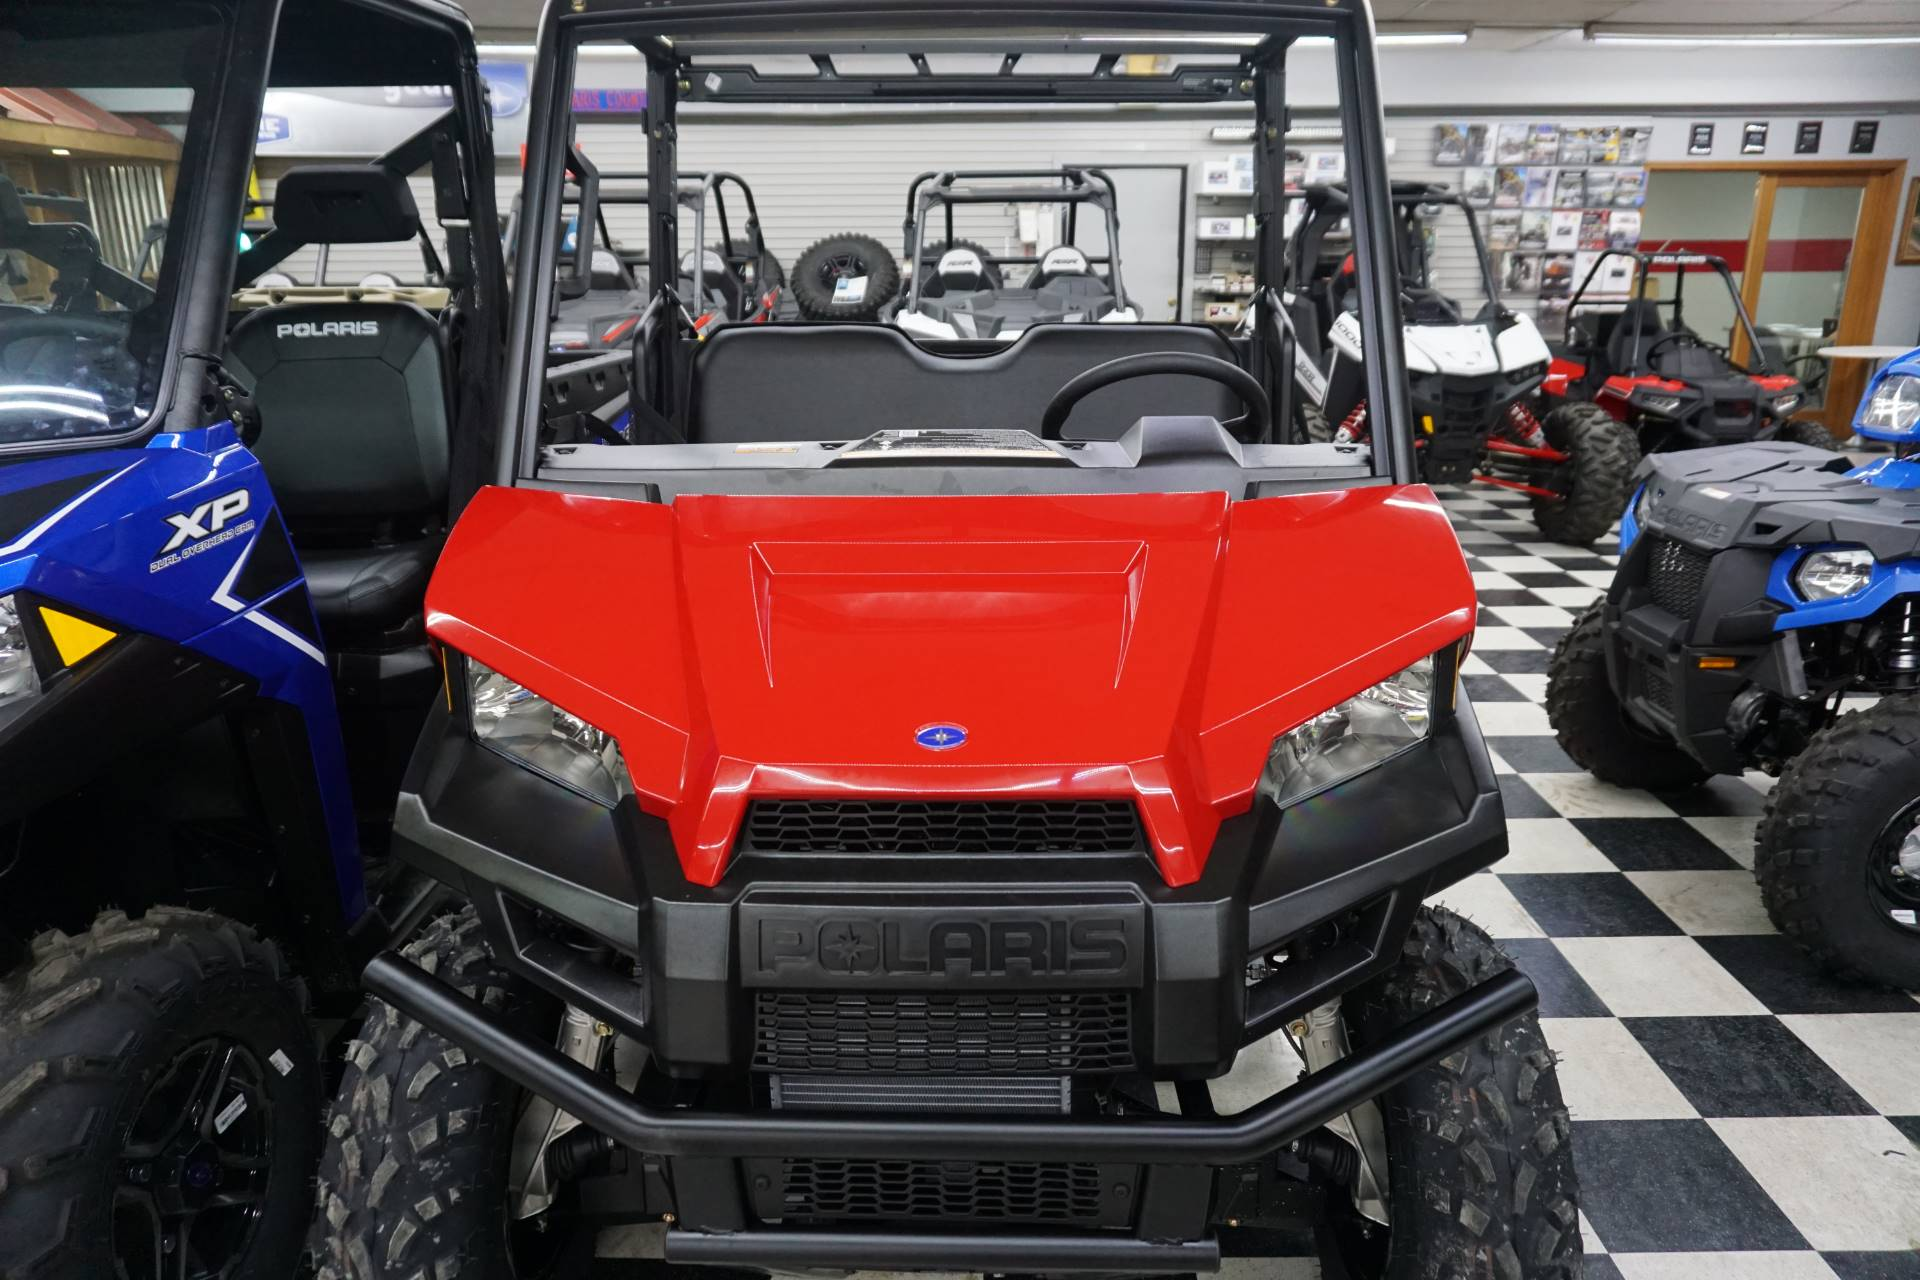 2019 Polaris Ranger 500 for sale 1524